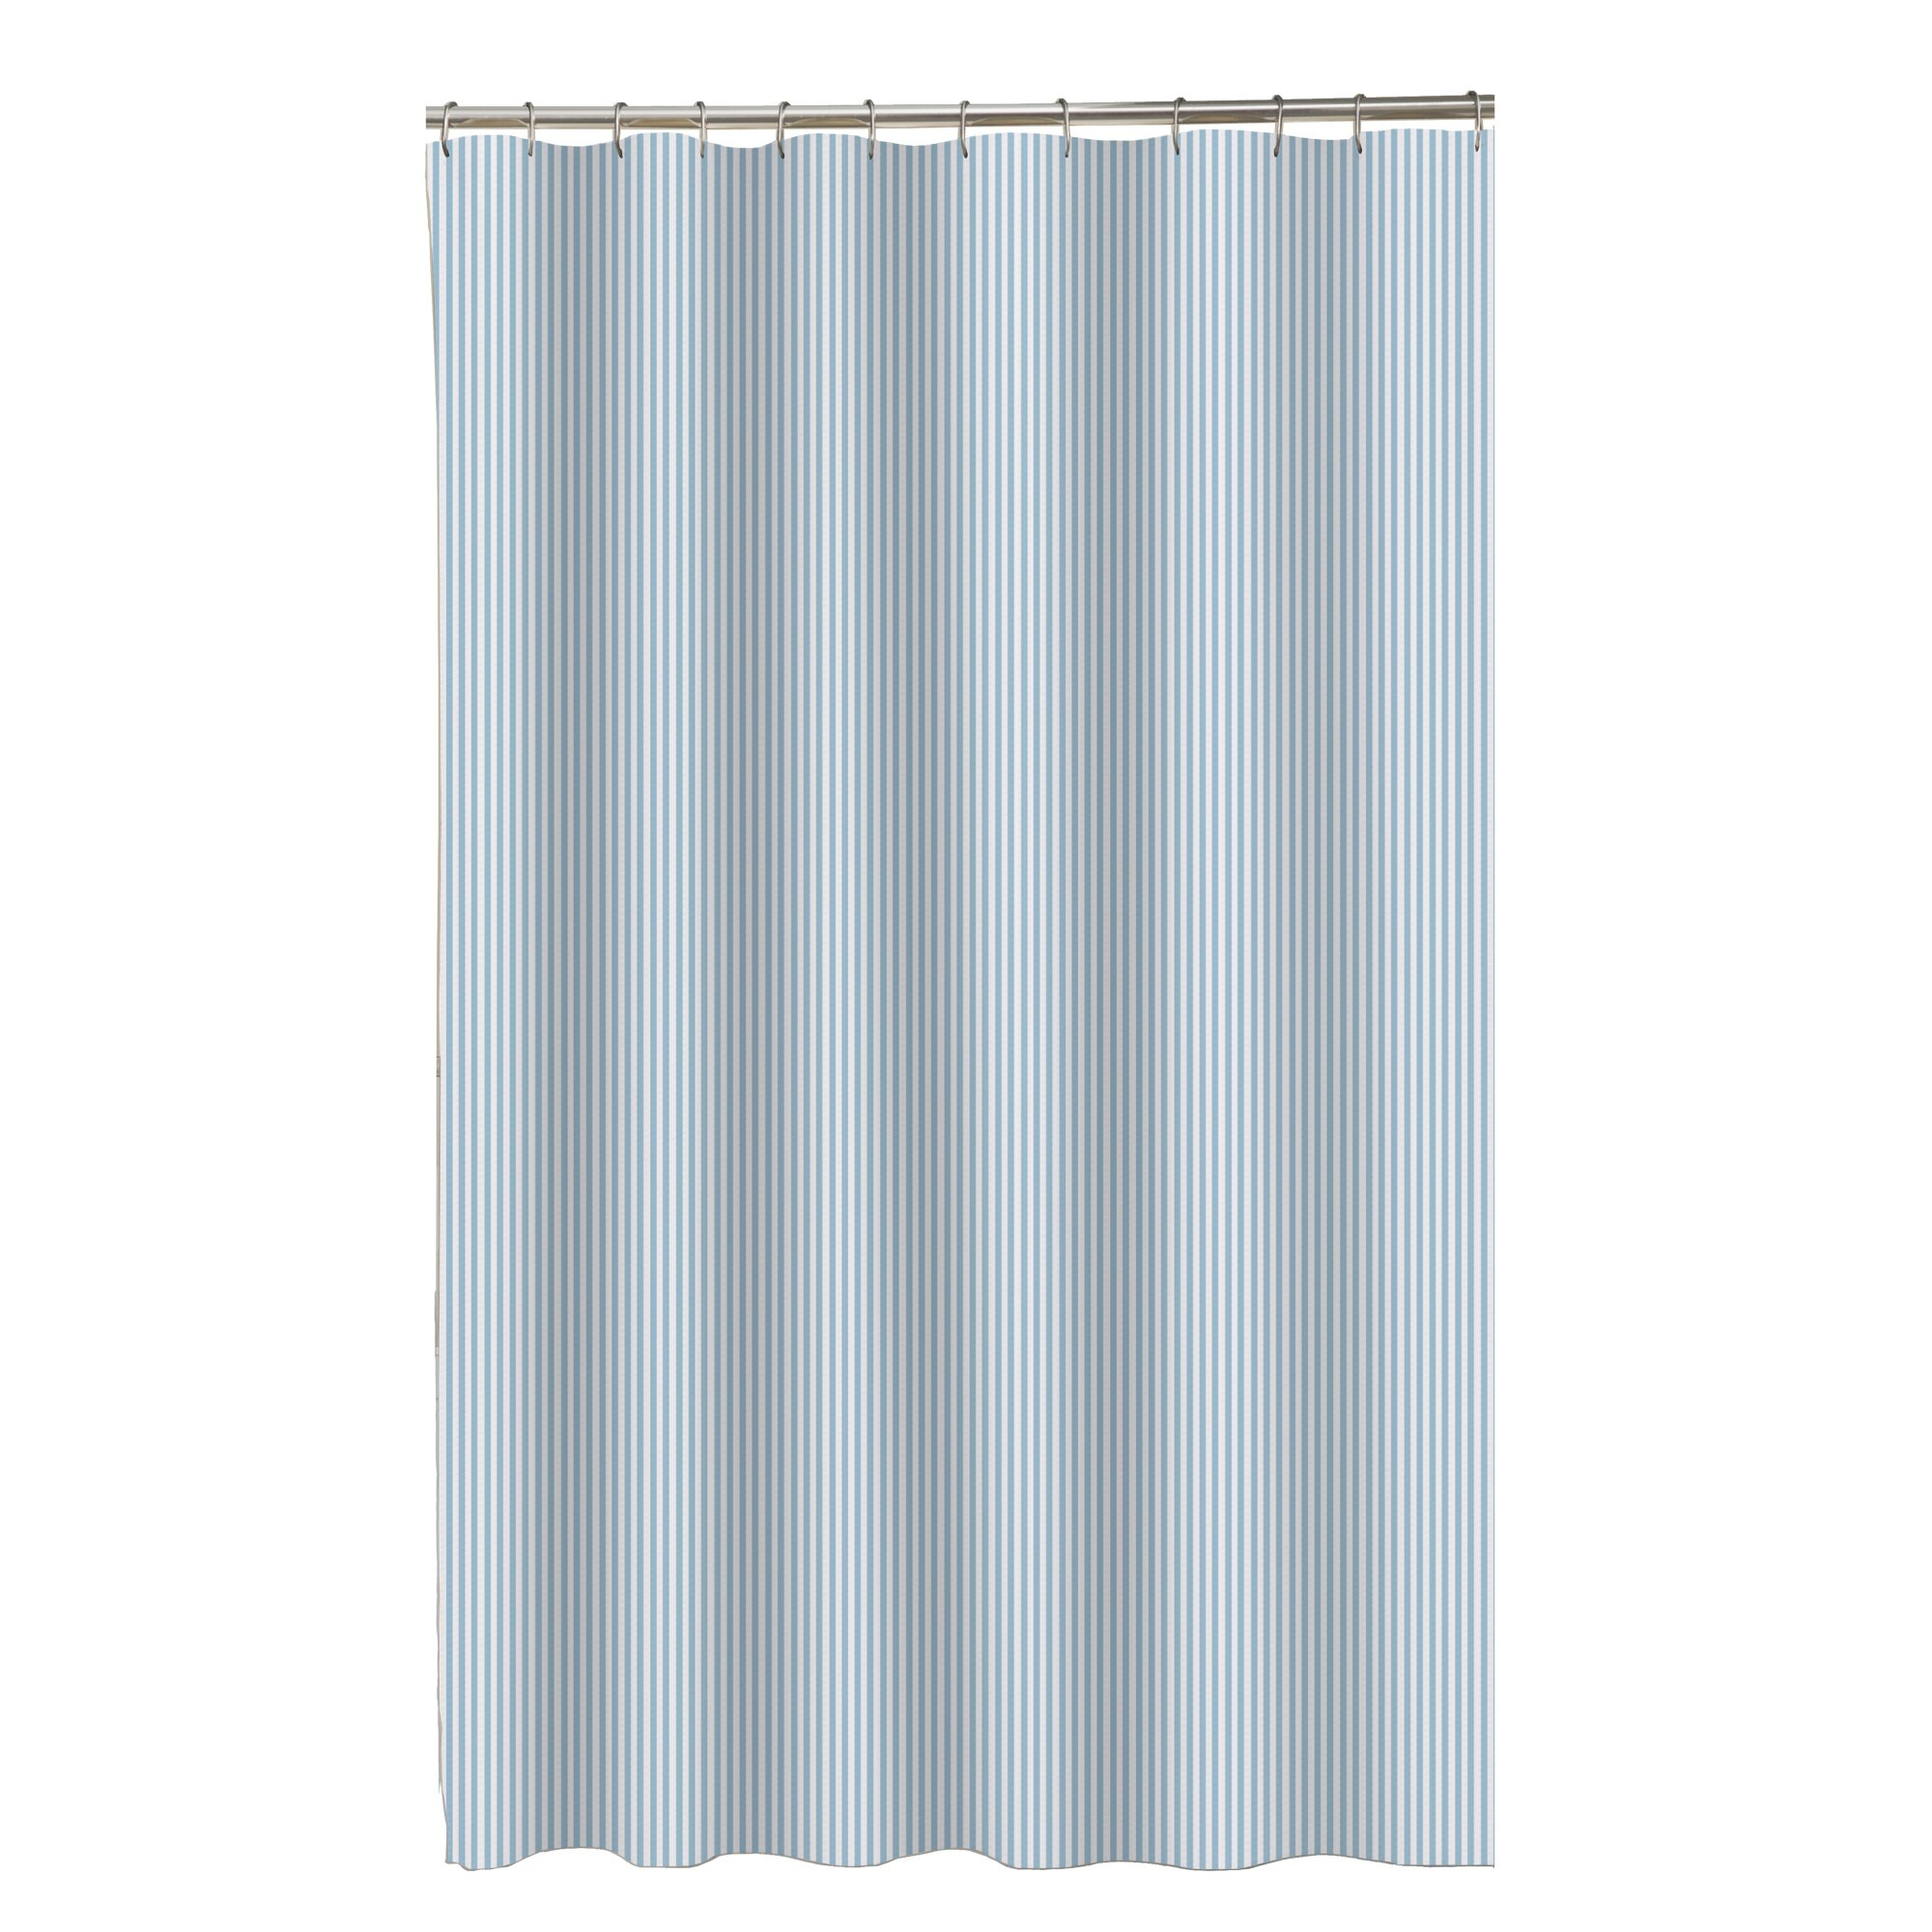 Maytex Seersucker Stripe Shower Curtain Amp Reviews Wayfair Ca